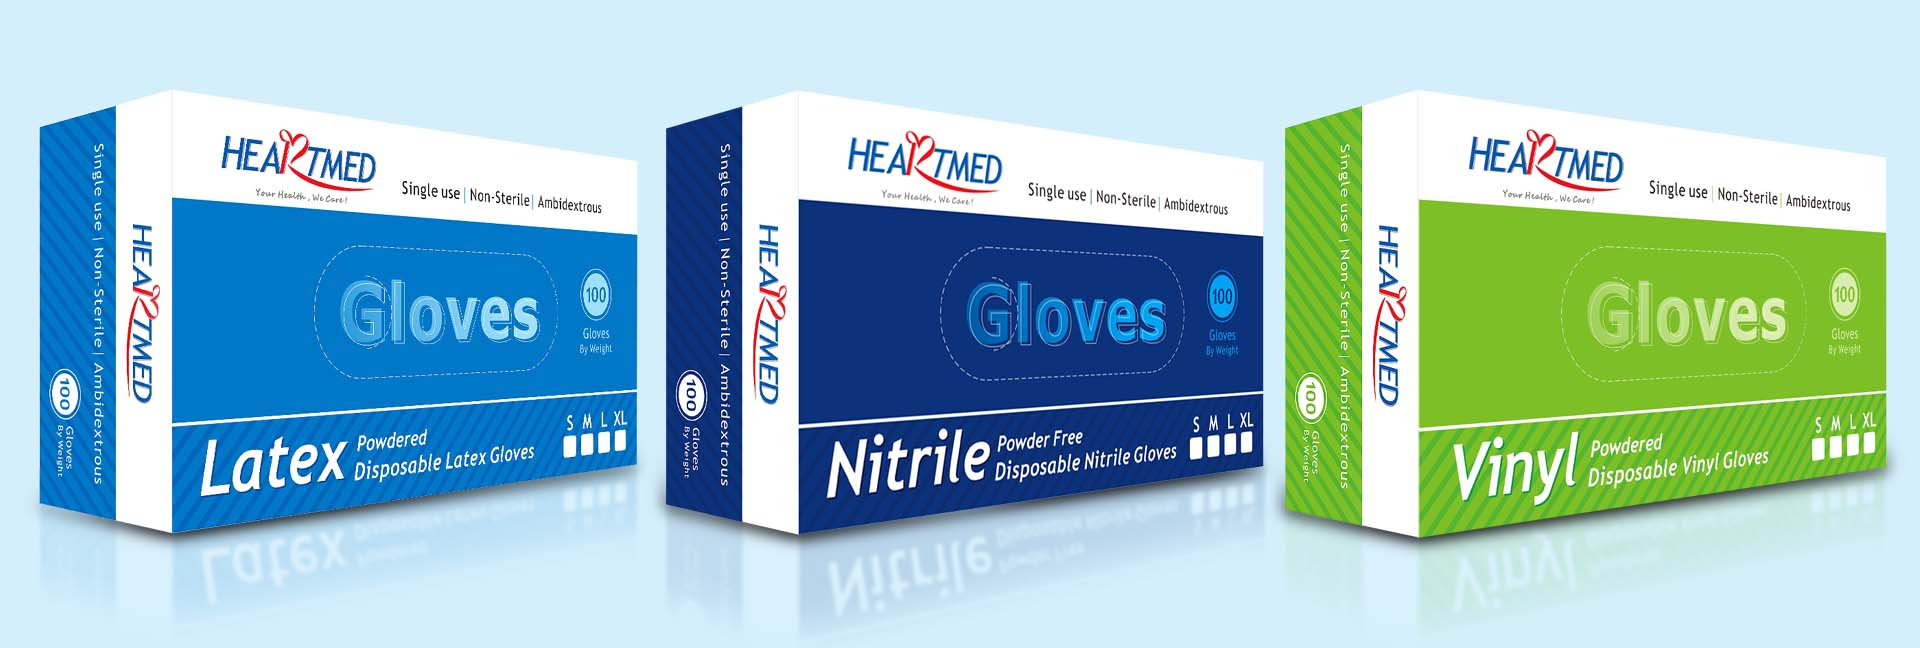 Heartmed gloves